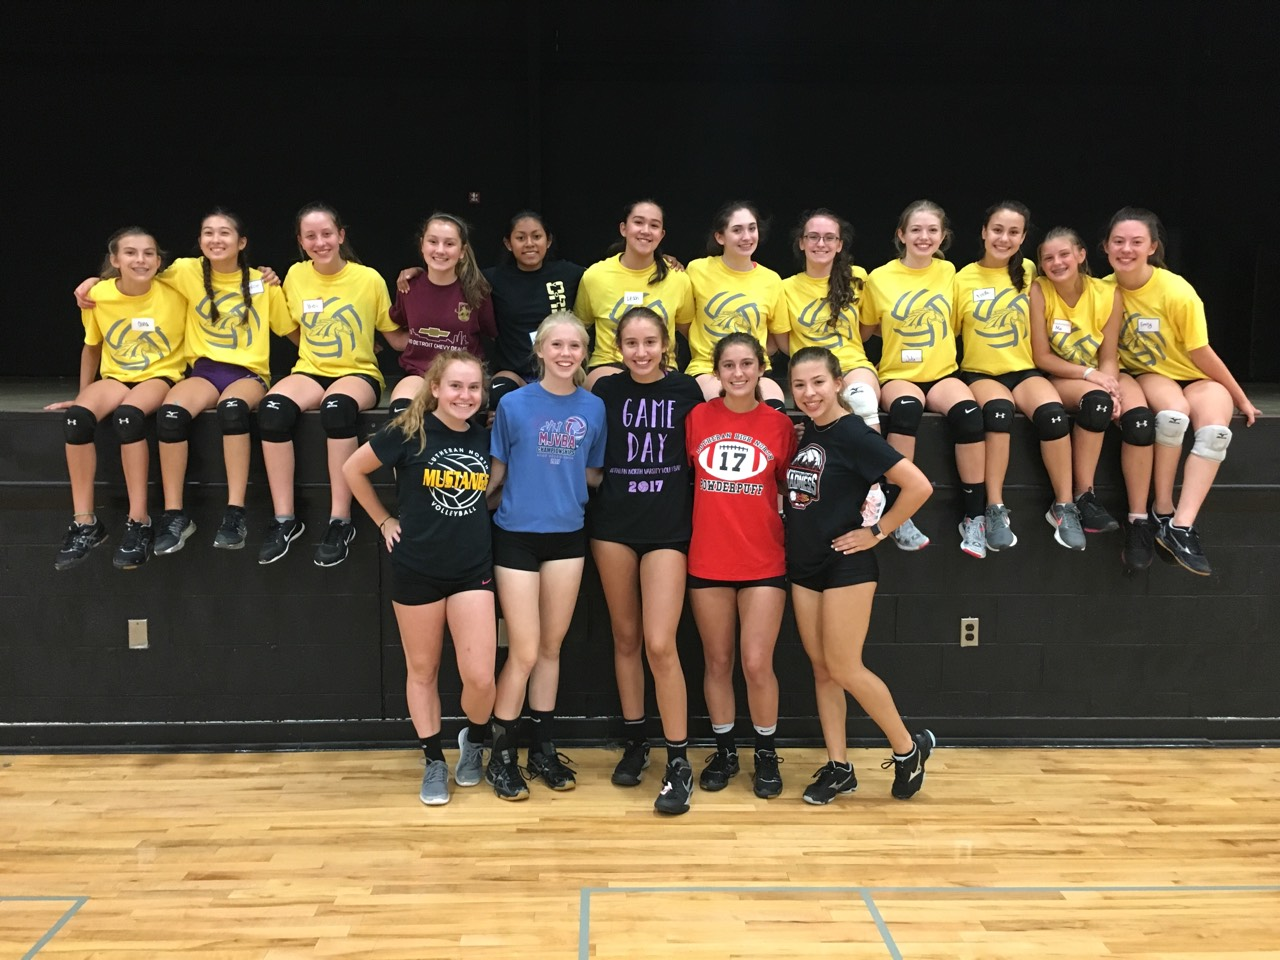 Volleyball Camp - July 22–July 25